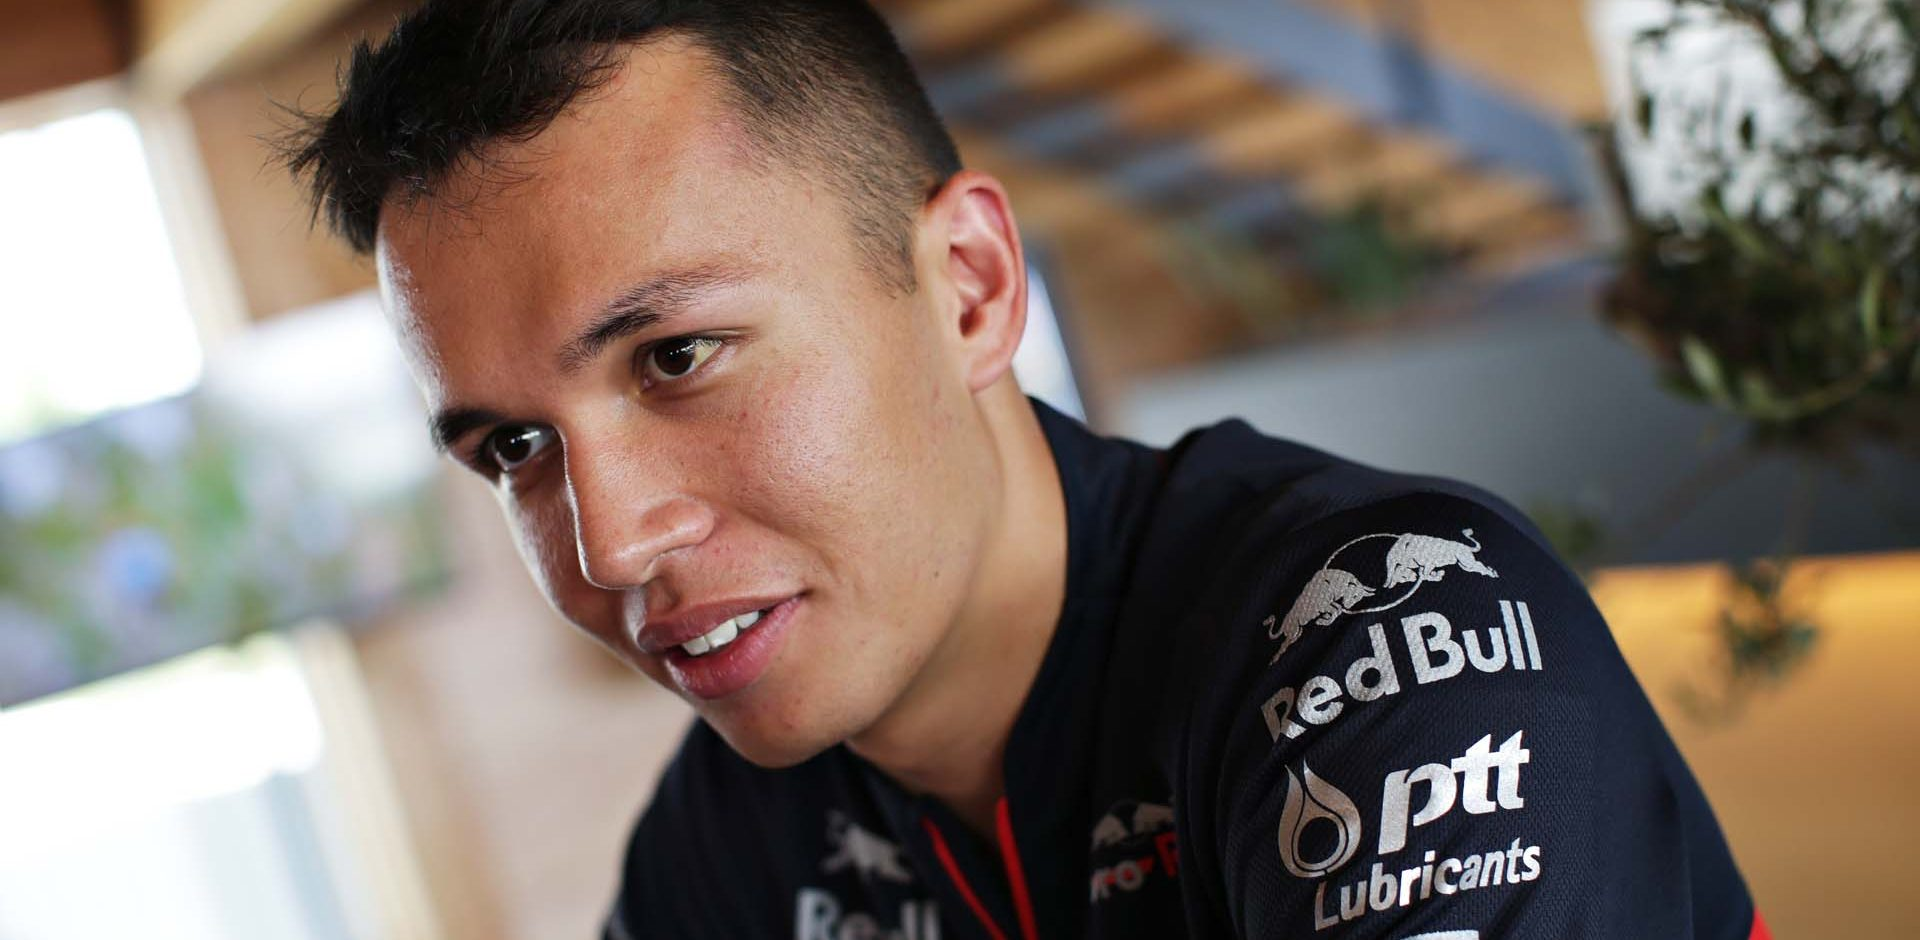 HOCKENHEIM, GERMANY - JULY 25: Alexander Albon of Thailand and Scuderia Toro Rosso talks to the media in the Paddock during previews ahead of the F1 Grand Prix of Germany at Hockenheimring on July 25, 2019 in Hockenheim, Germany. (Photo by Peter Fox/Getty Images) // Getty Images / Red Bull Content Pool  // AP-212ADZ2KW2511 // Usage for editorial use only // Please go to www.redbullcontentpool.com for further information. //